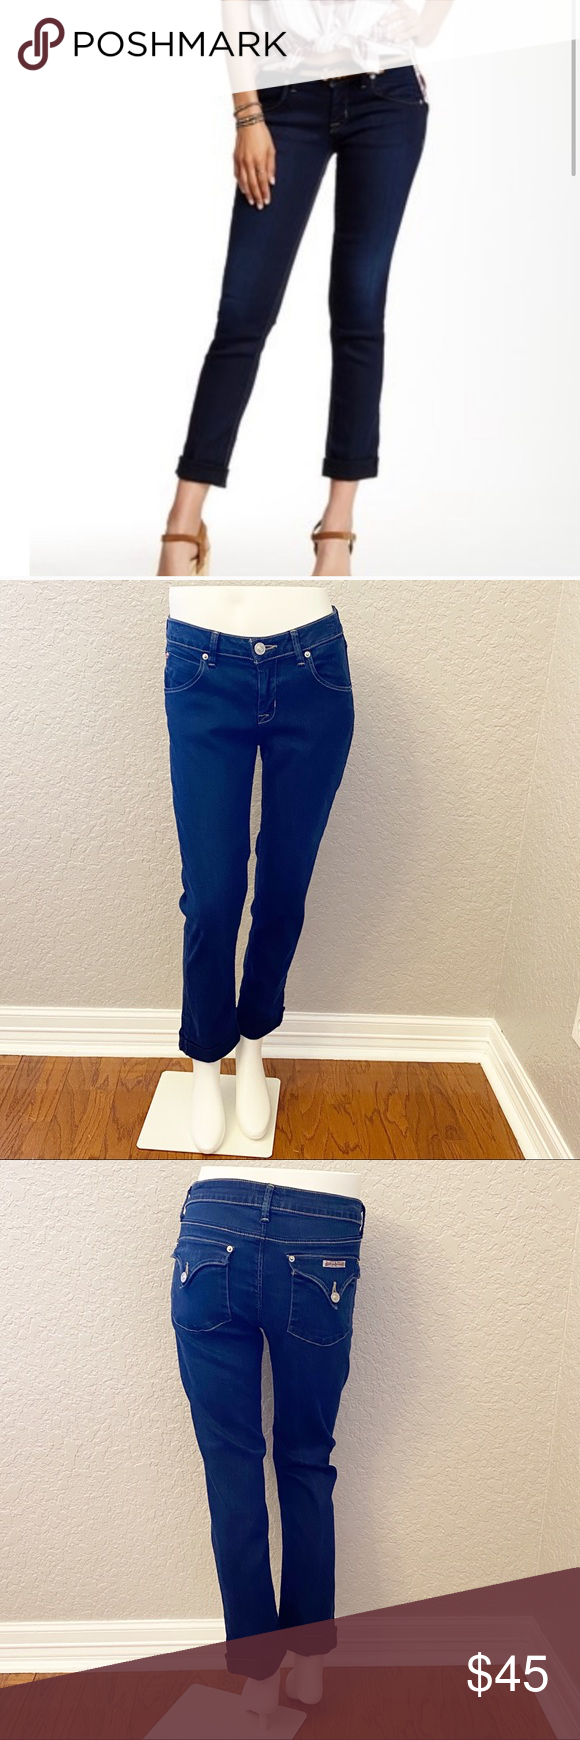 """Hudson Jeans Bacara Crop Straight Cuffed- 29 EUC Hudson Jeans Bacara Crop Straight Cuffed mid-rise jeans in a dark wash.   ▪️Size: 29 ▪️Waist: 16"""" across ▪️Rise: 8.5"""" ▪️Inseam: 26"""" ▪️Material: 52% Tencel, 25% Cotton, 21% Polyamide, 2% Elastan   Offers welcome!  *All measurements are taken flat lay and are approximations.  0374-4 Hudson Jeans Jeans Ankle & Cropped"""